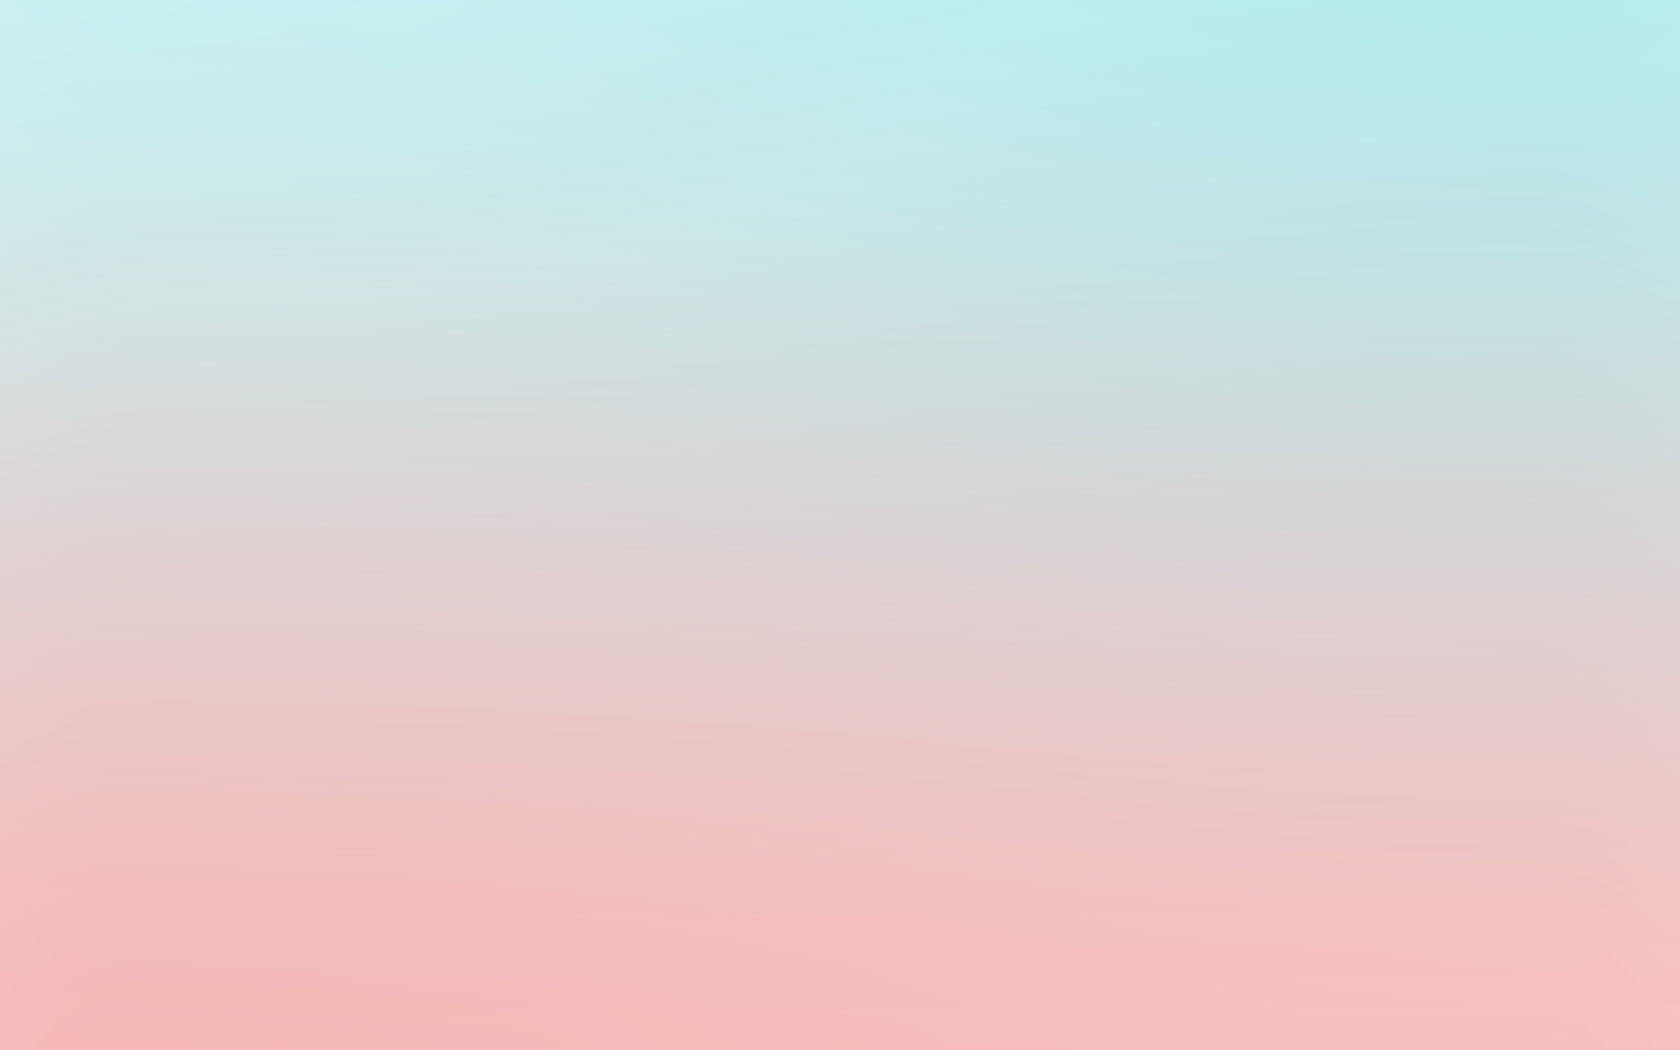 Wallpaper Macbook Air Fall Art Sm40 Blue Red Soft Pastel Blur Gradation Wallpaper